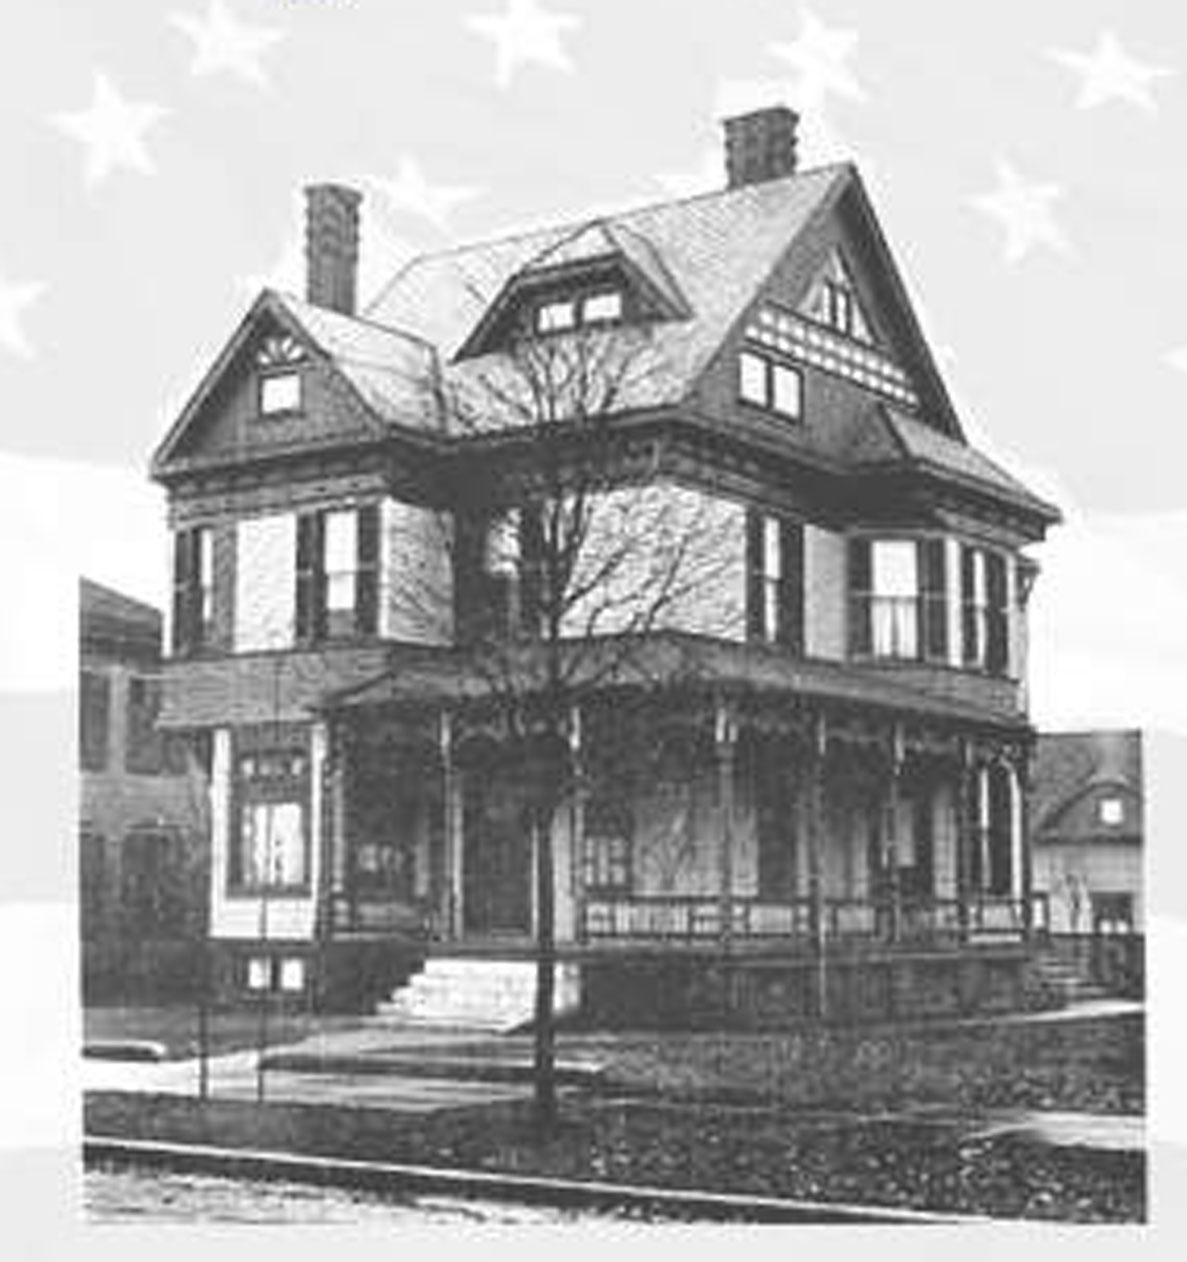 The Eugene V. Debs Home in Terre Haute, Indiana is now a museum dedicated to the remembrance of Debs' life and work.